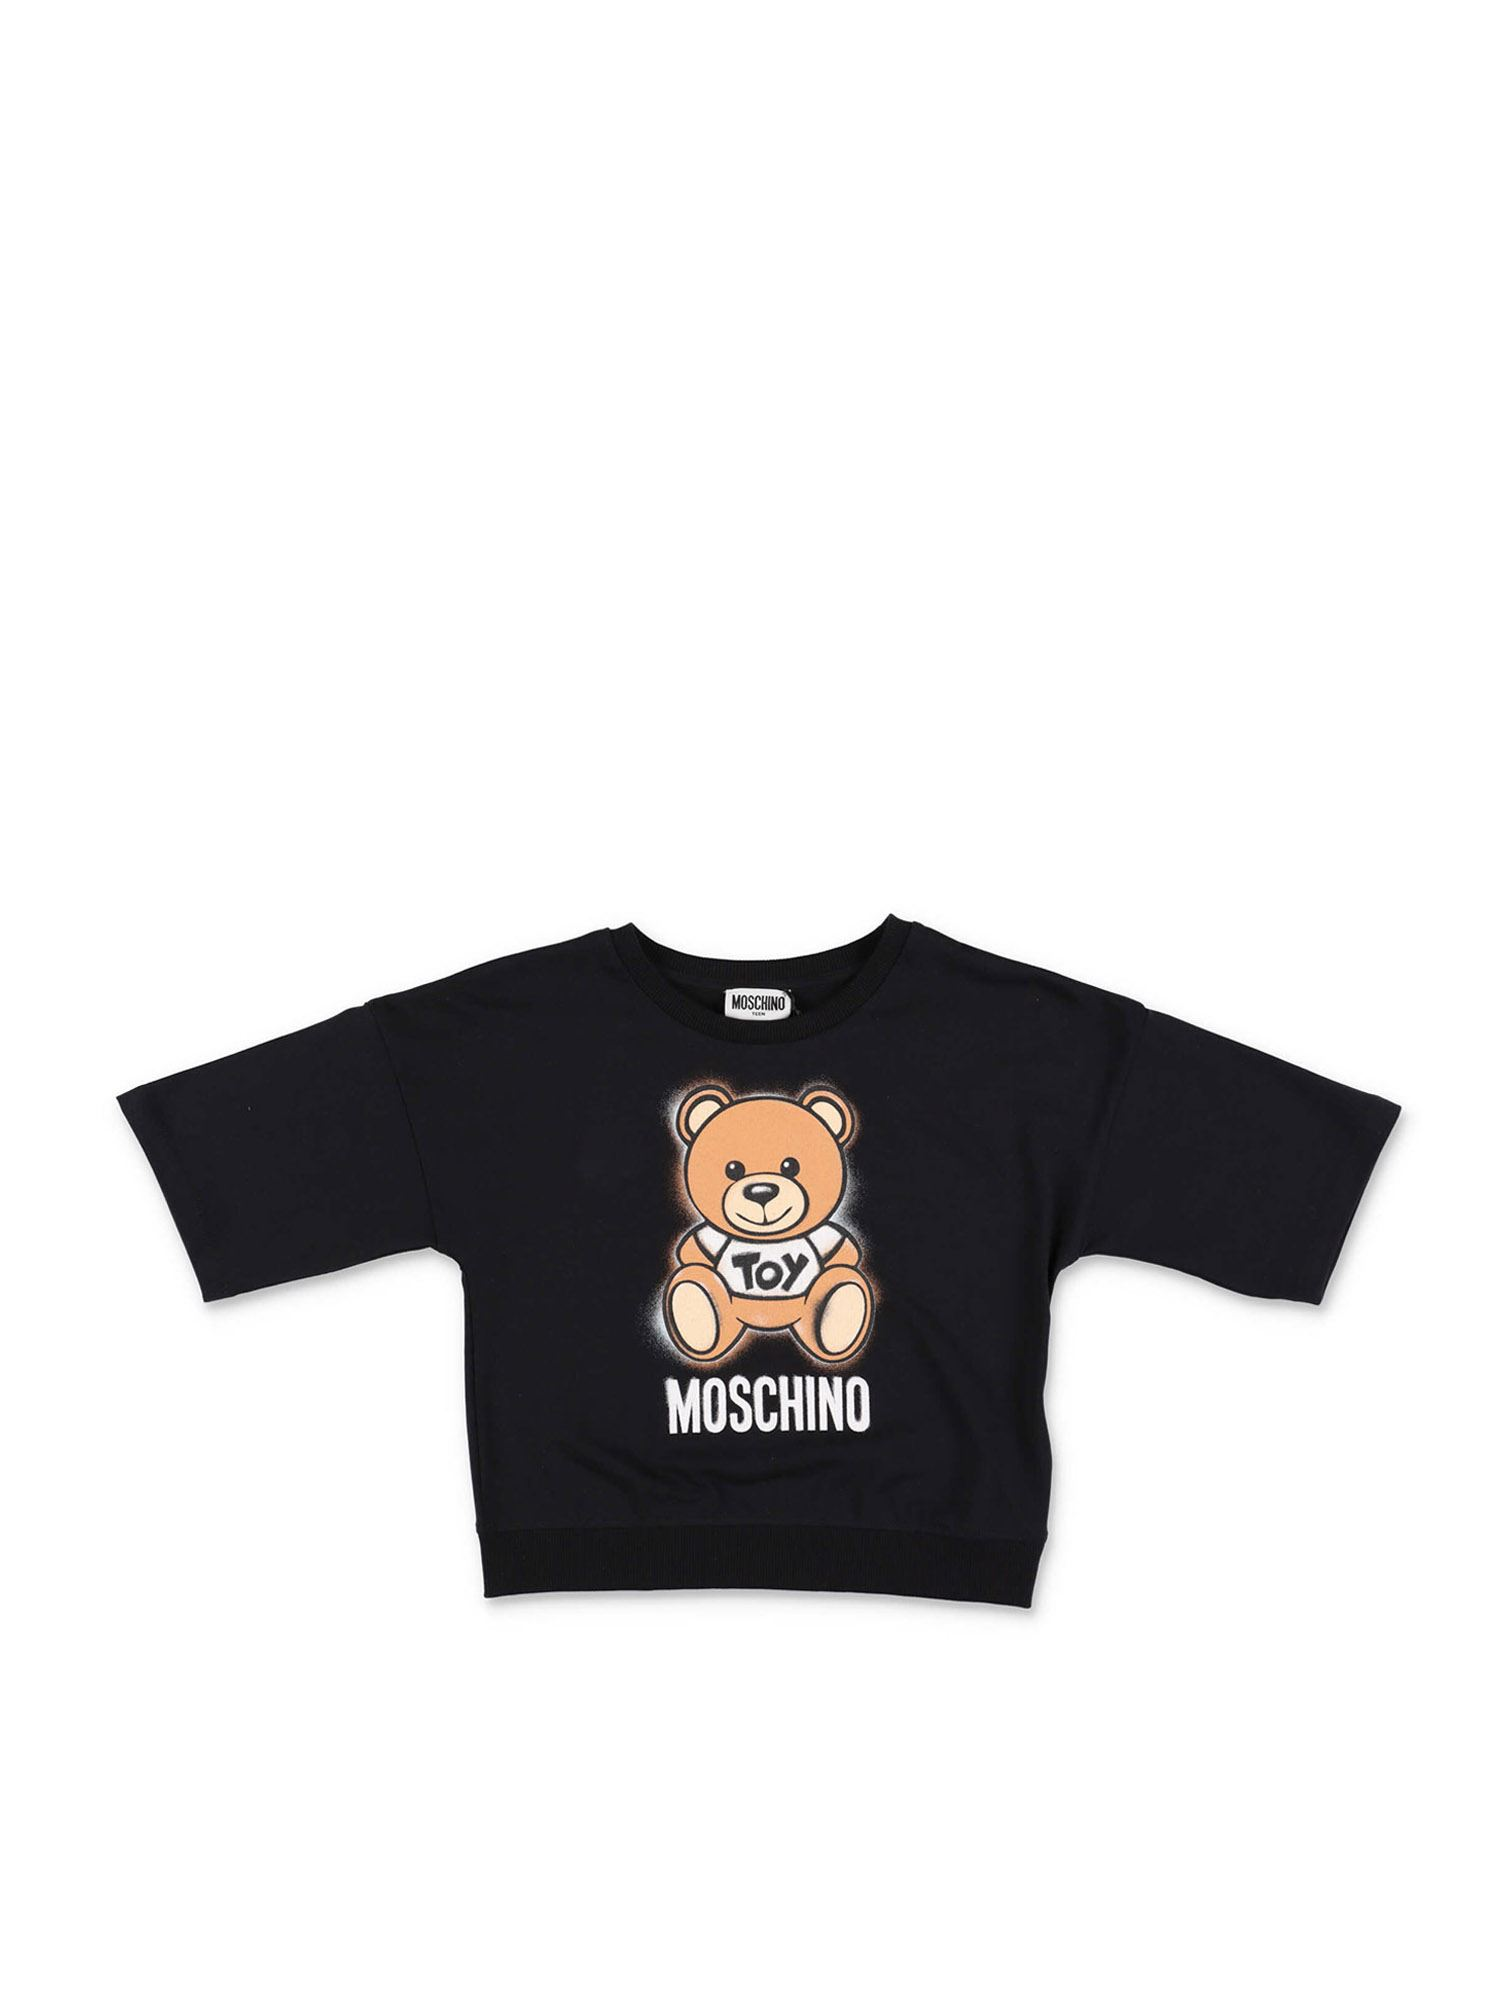 Moschino OVERSIZED T-SHIRT IN BLACK